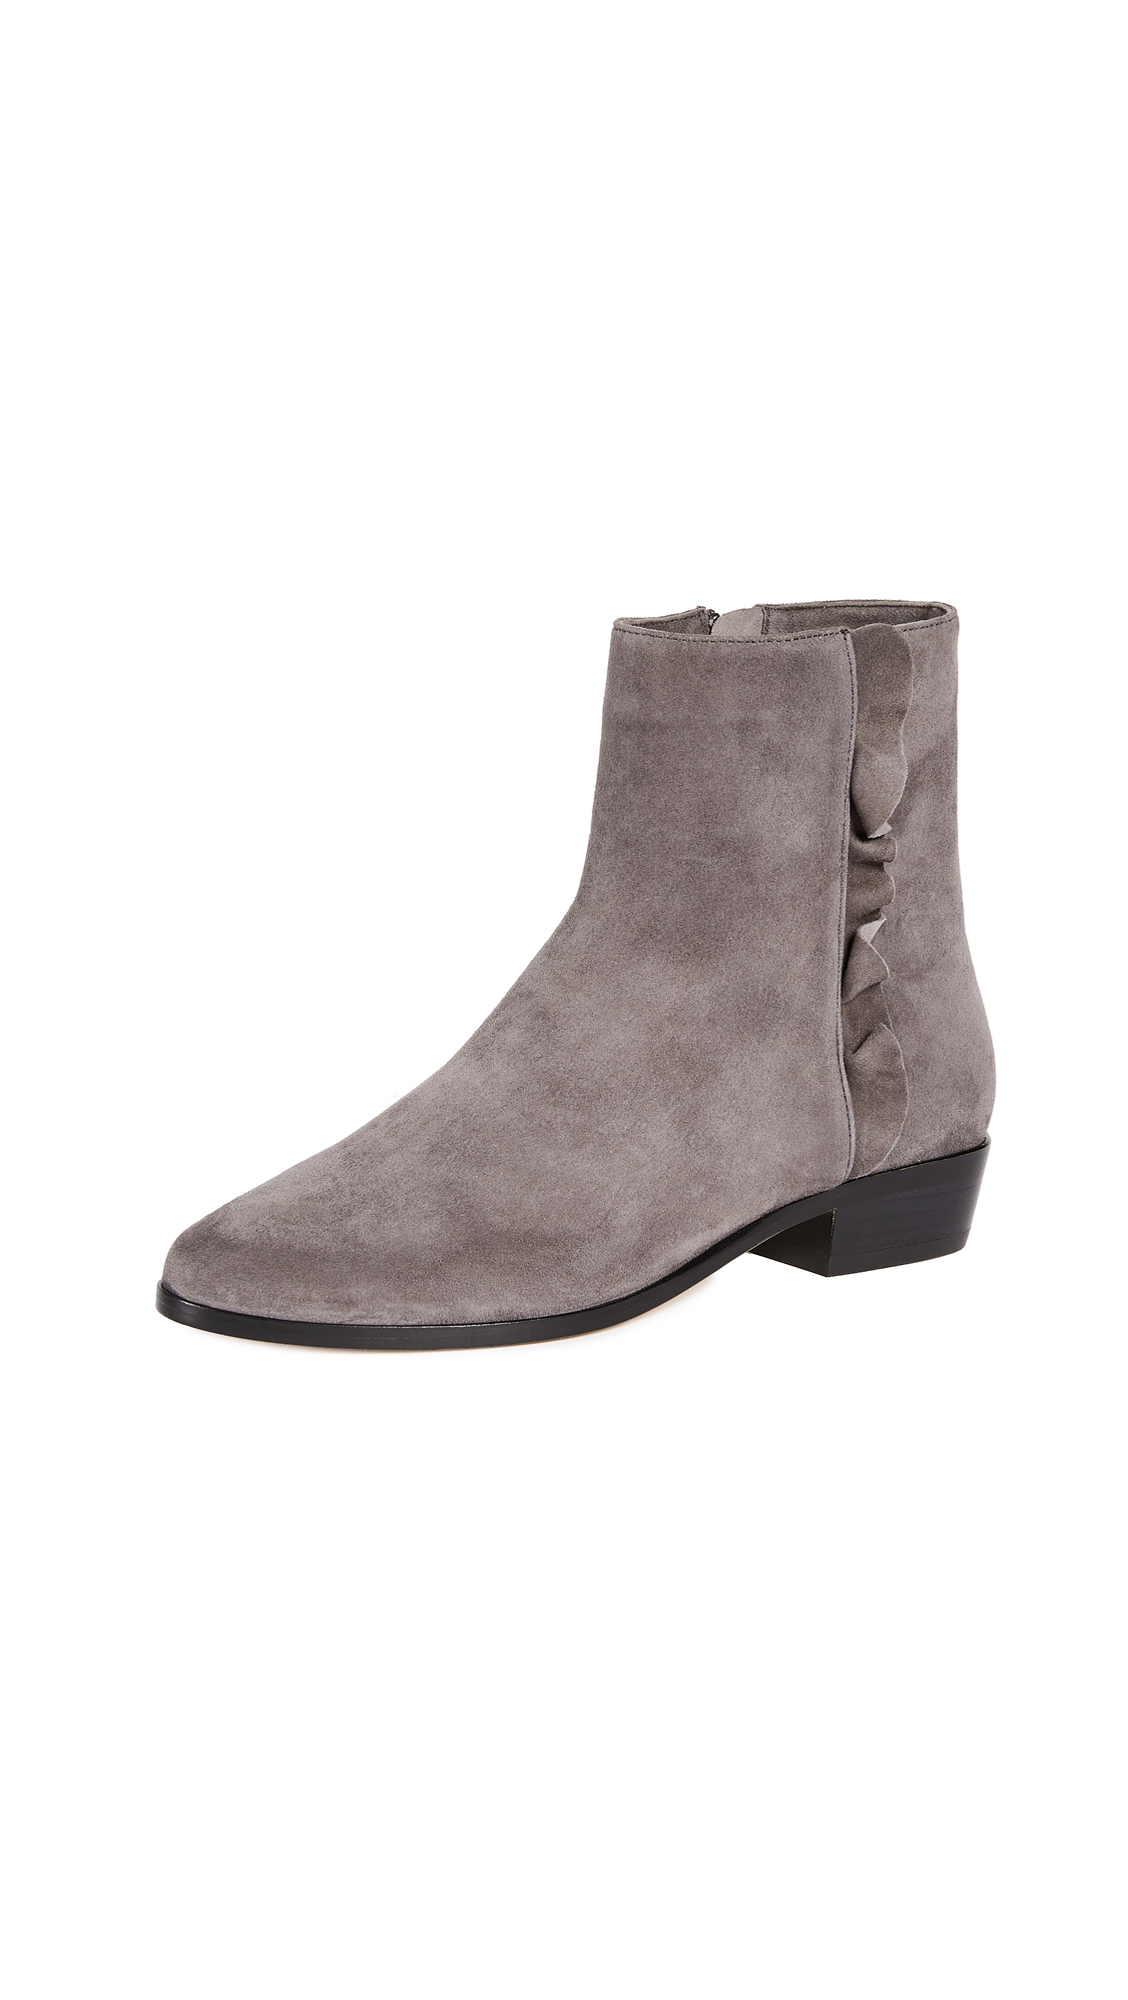 Joie Suede Laleh Booties - Coal